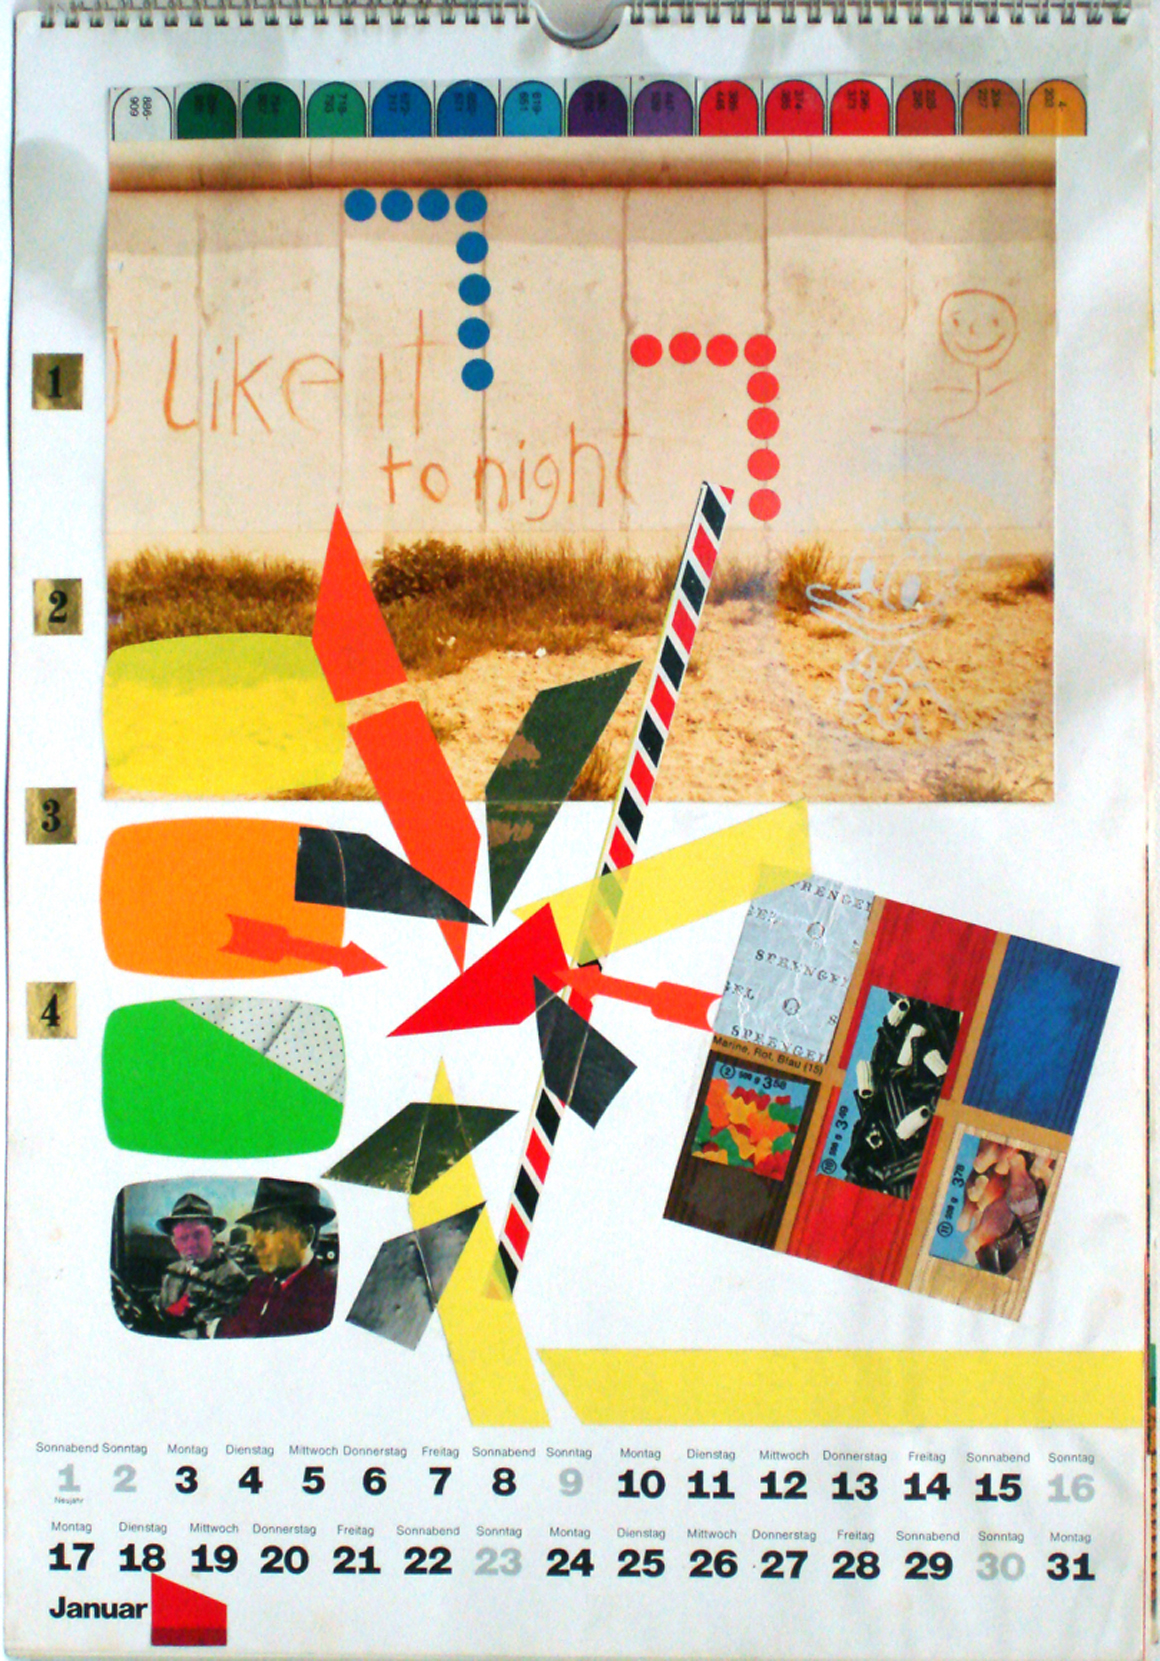 """<p><span class=""""name"""">Moritz Reichelt</span><br><em>Calendar 1977 January</em><span class='media'>collage</span>16 x 11.25 in (40.6 x 28.6 cm)<br>20.75 x 16.75 in (52.7 x 42.5 cm) Framed (framed)<br>1977<br><a class='inquire' href='mailto:info@gildargallery.com?subject=Artwork Inquiry MREI0010&body=I am interested in finding out more about Calendar 1977 January by Moritz Reichelt'>Inquire</a></p>"""